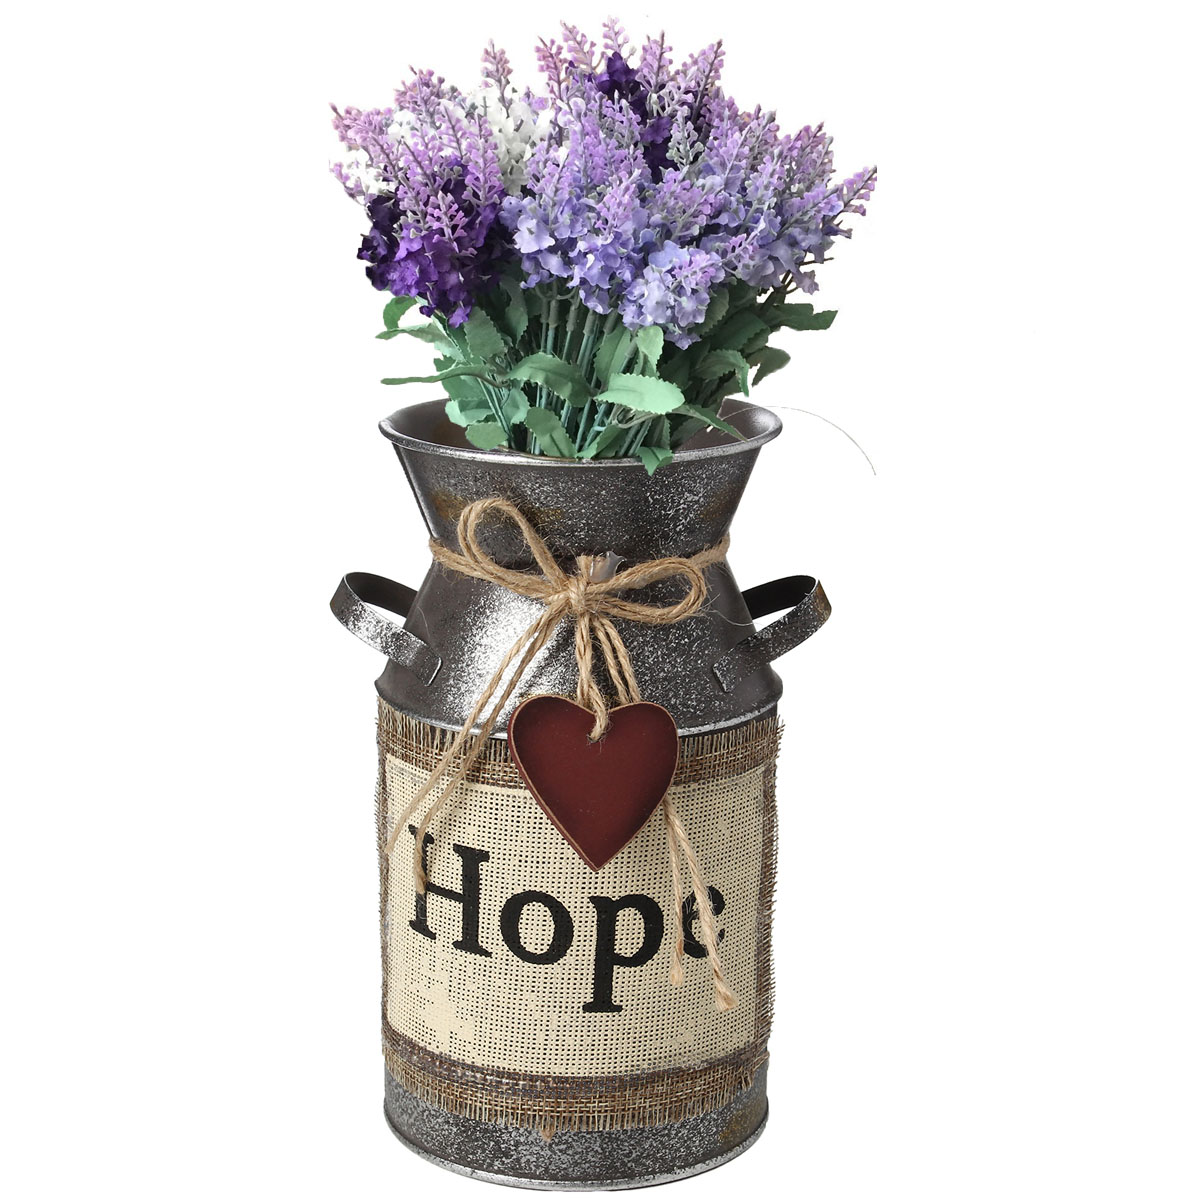 Garden Rustic Vintage Shabby Metal Flower Pot Wedding Flower Vase Plant Pot Jug Home Decorations